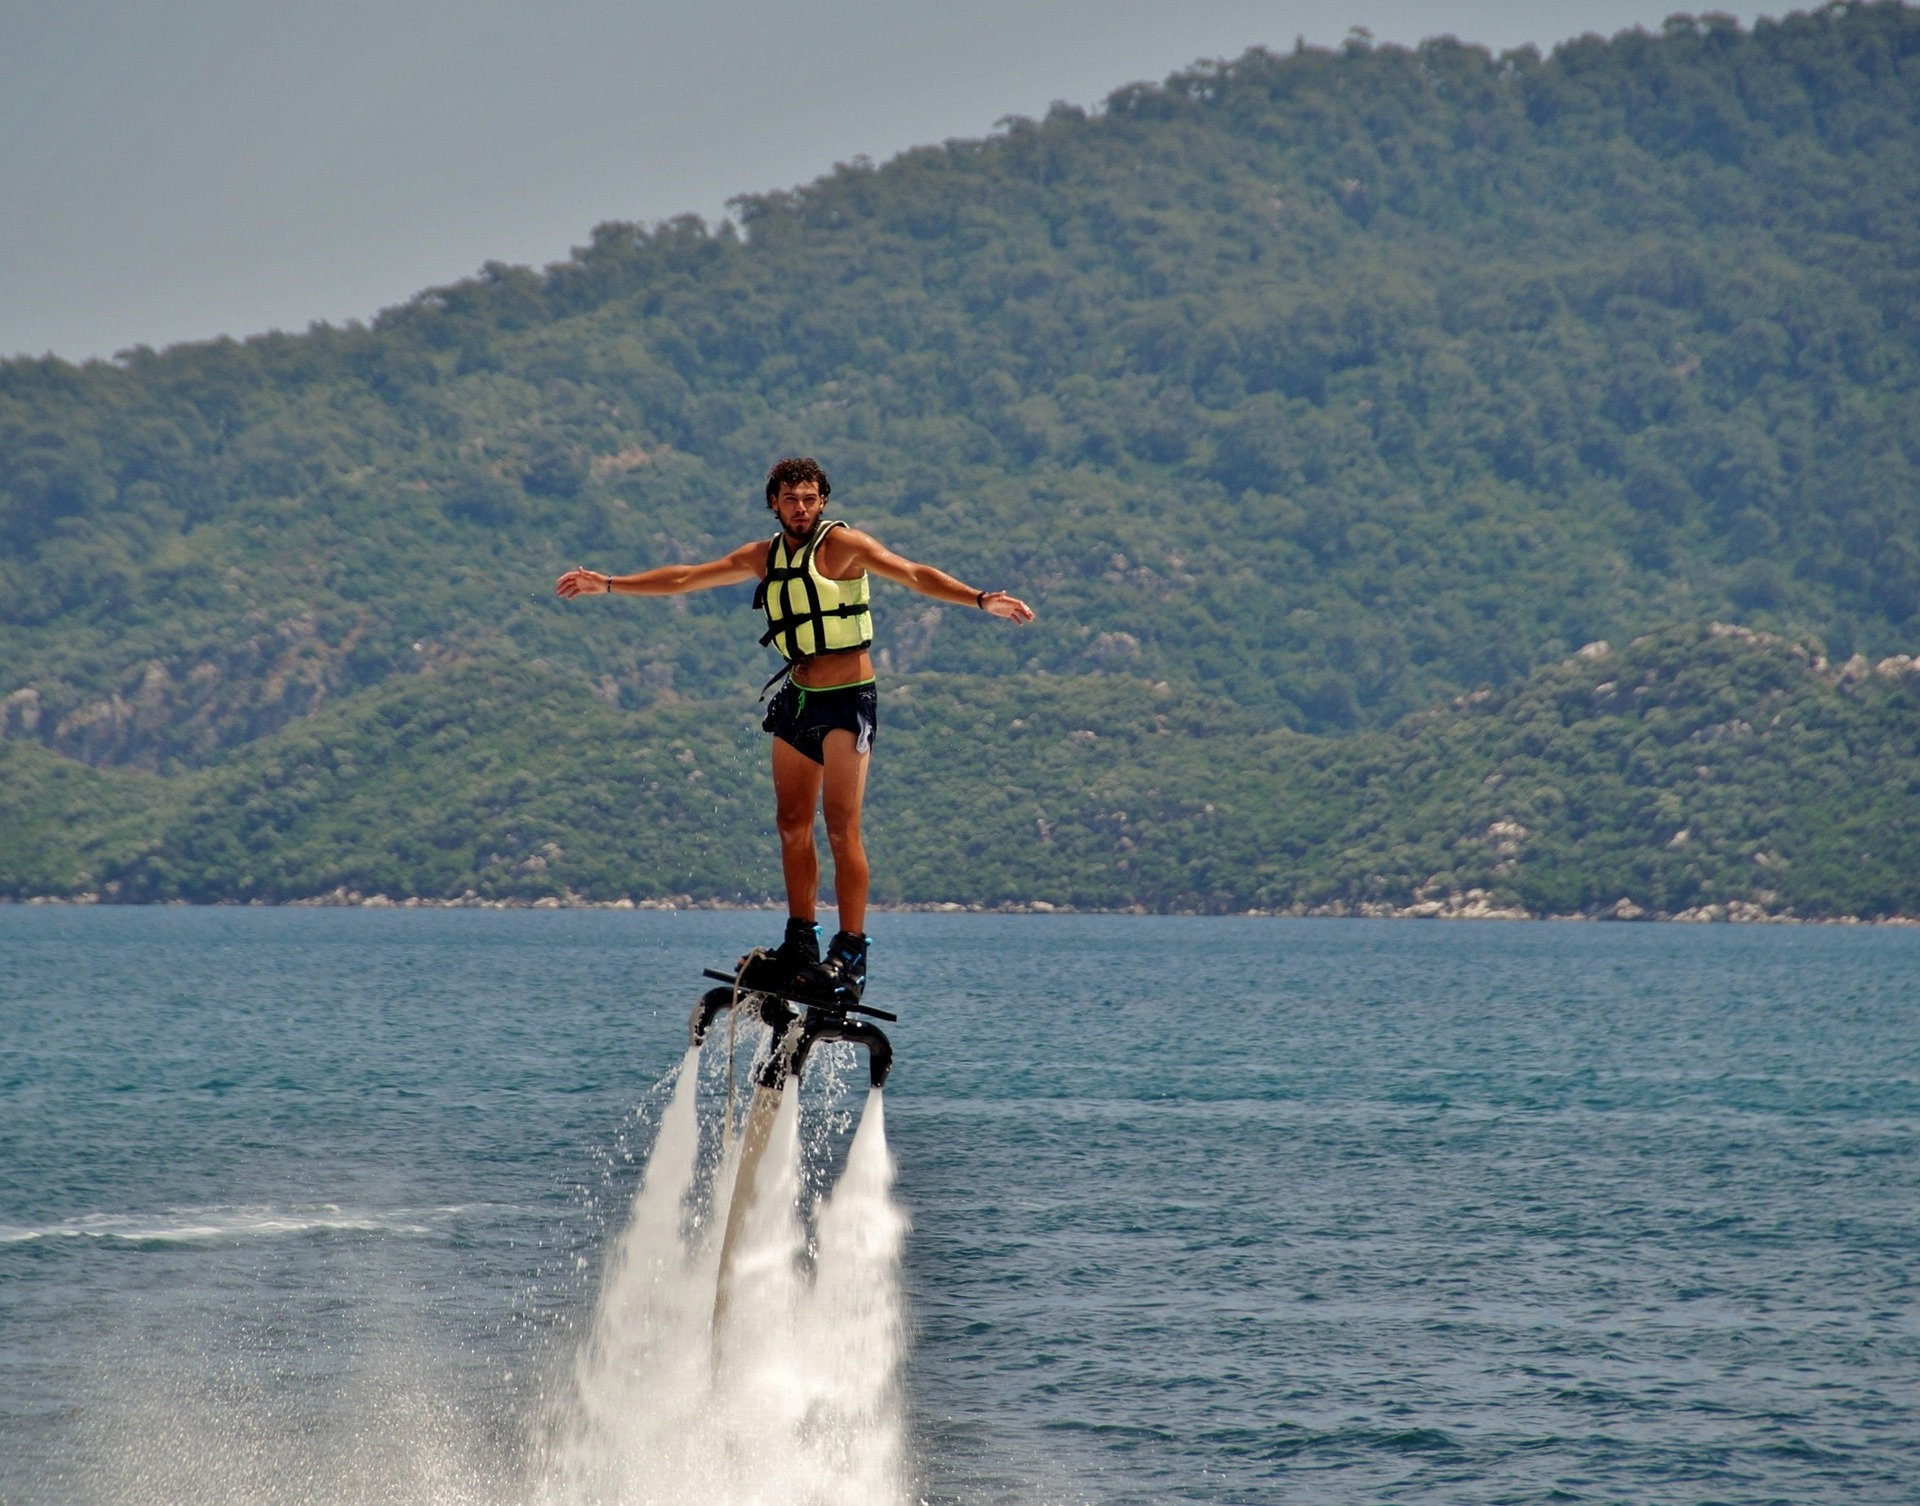 For an adventurous things to do in Puerto Rico try a flyboard